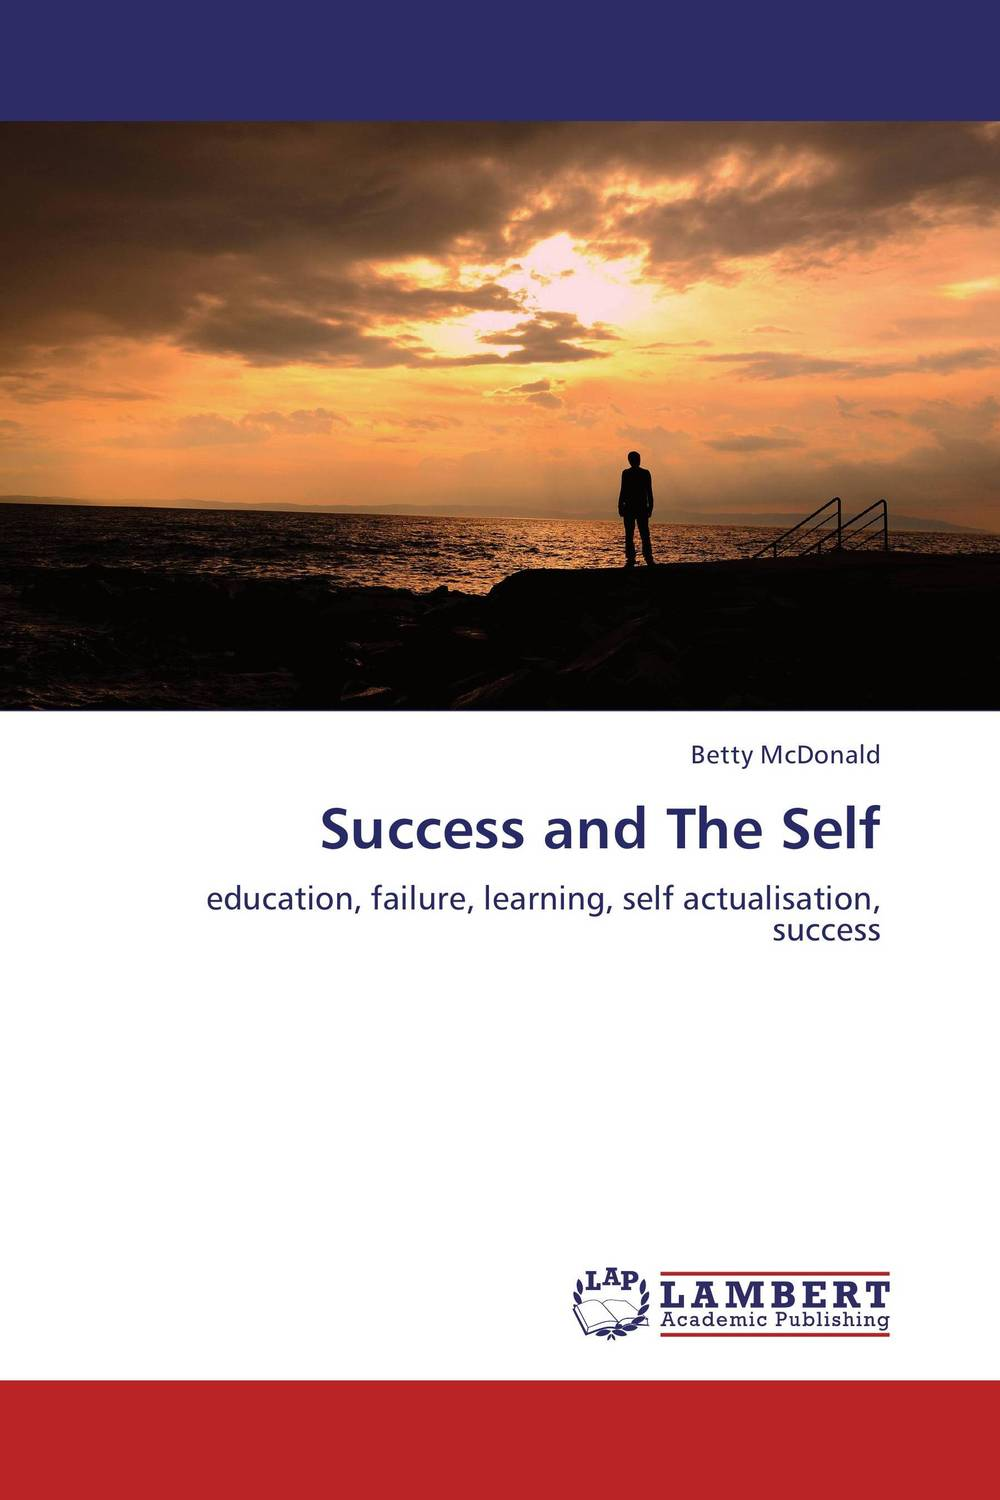 Success and The Self jim hornickel negotiating success tips and tools for building rapport and dissolving conflict while still getting what you want